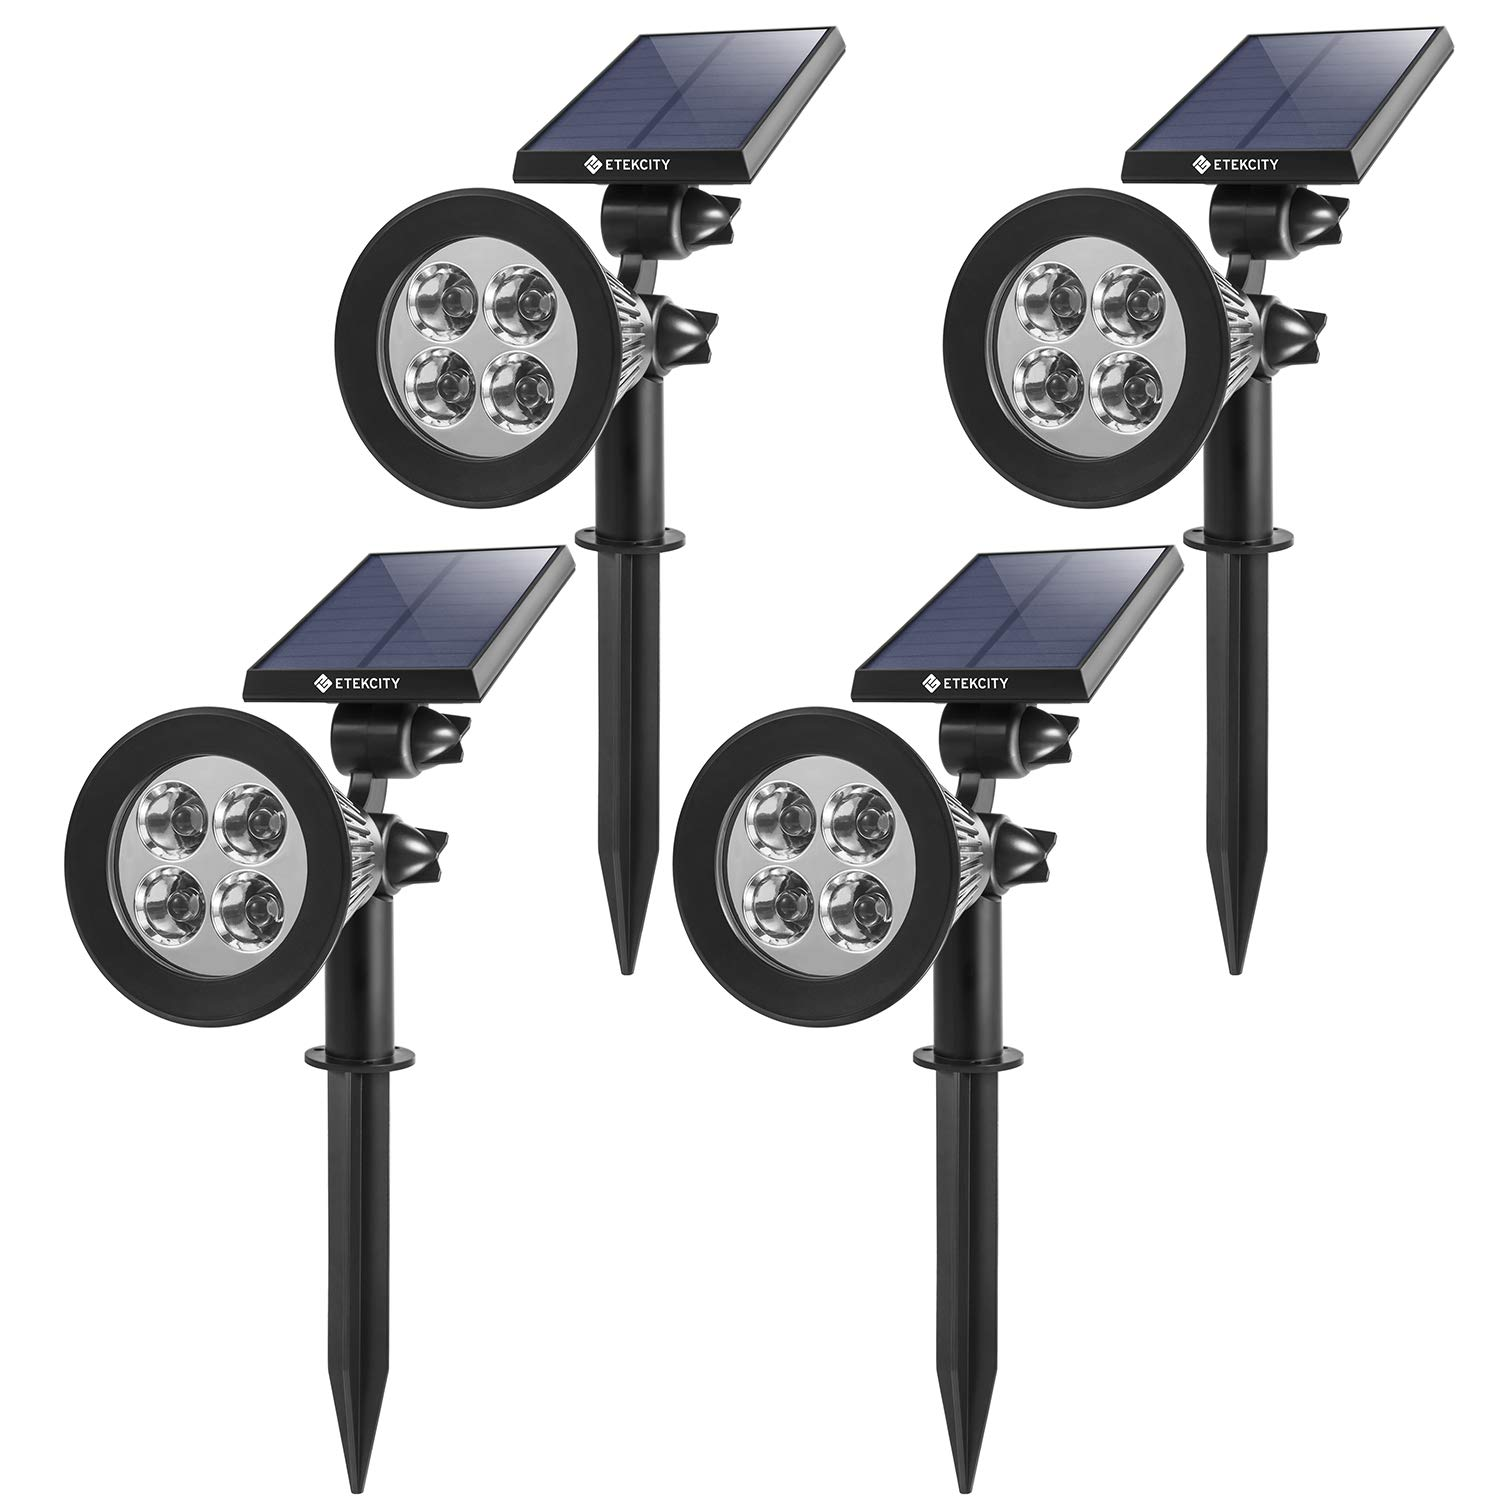 Etekcity Solar Spotlight, Solar Lights Outdoor, Waterproof LED Solar Powered Landscape Light, Wall and In-Ground Lights with Adjustable Brightness, Smart Solar Light Sensor, Auto On/Off, Outdoor Security Lighting for Yard Garden Driveway Pathway and Pool (